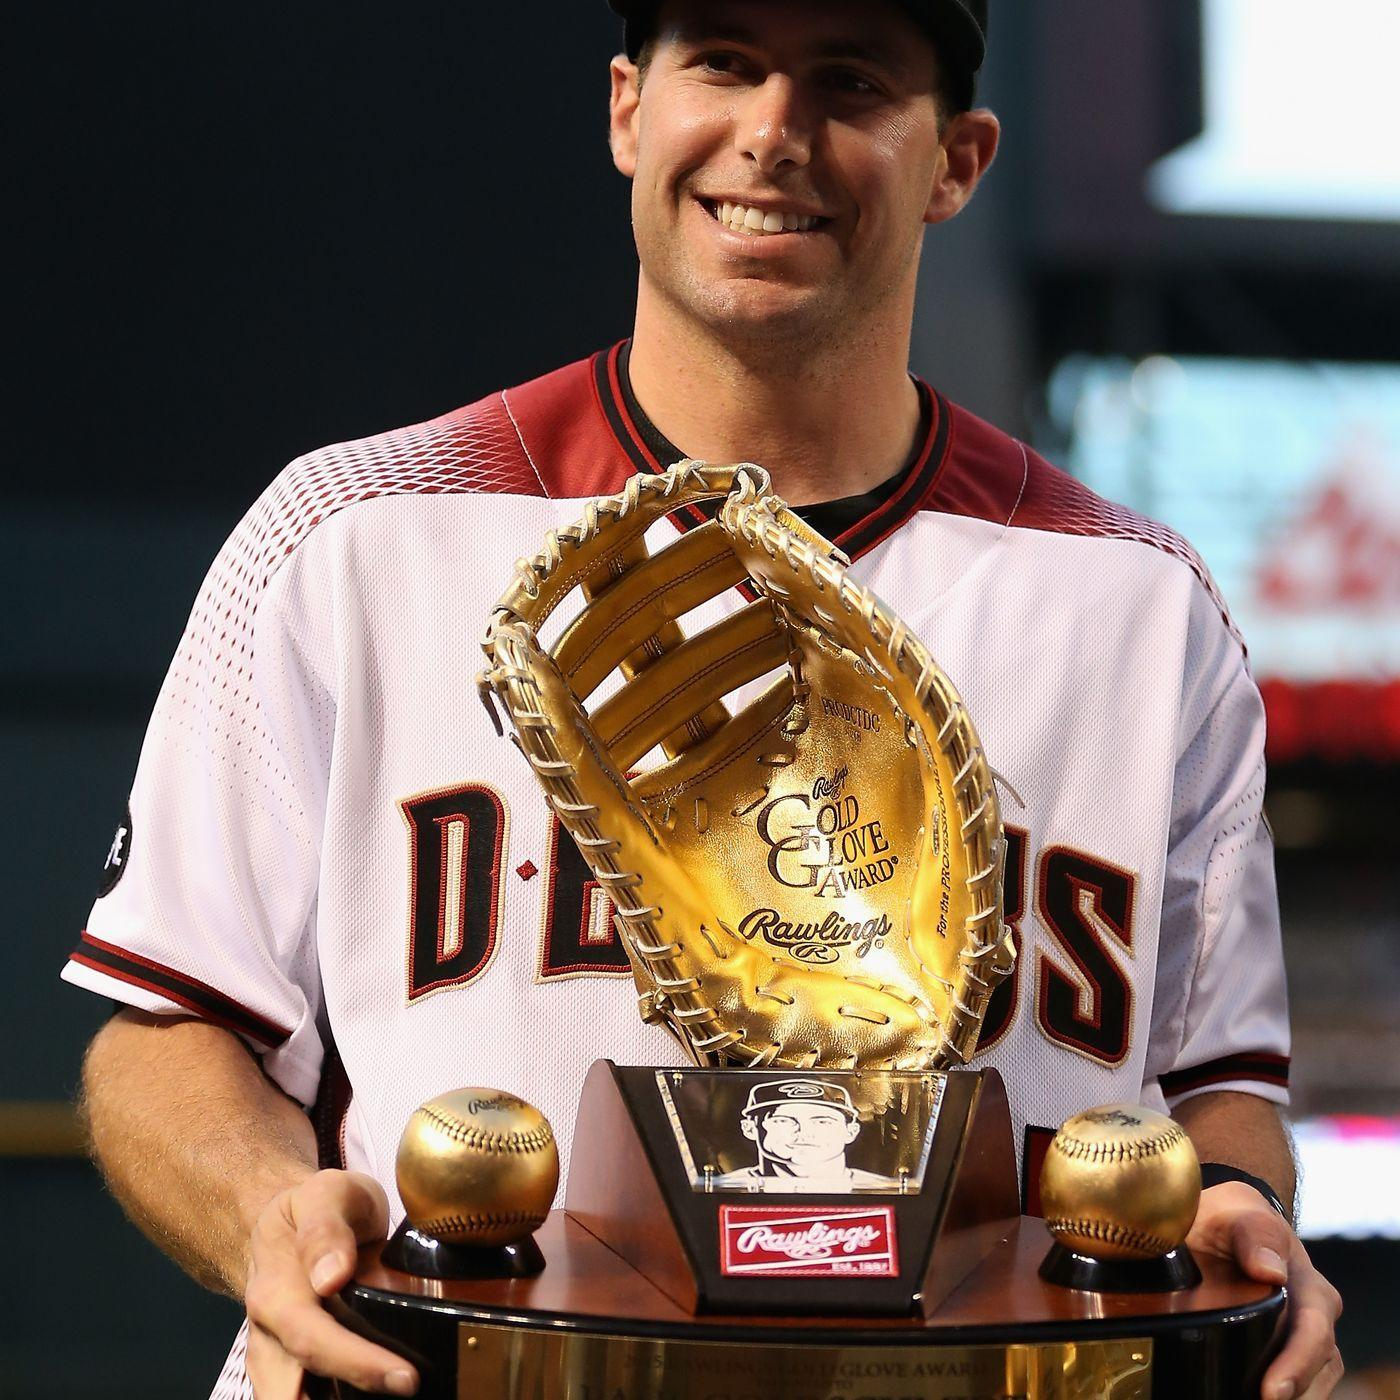 Tampa Bay Rays offseason trade target: 1B Paul Goldschmidt